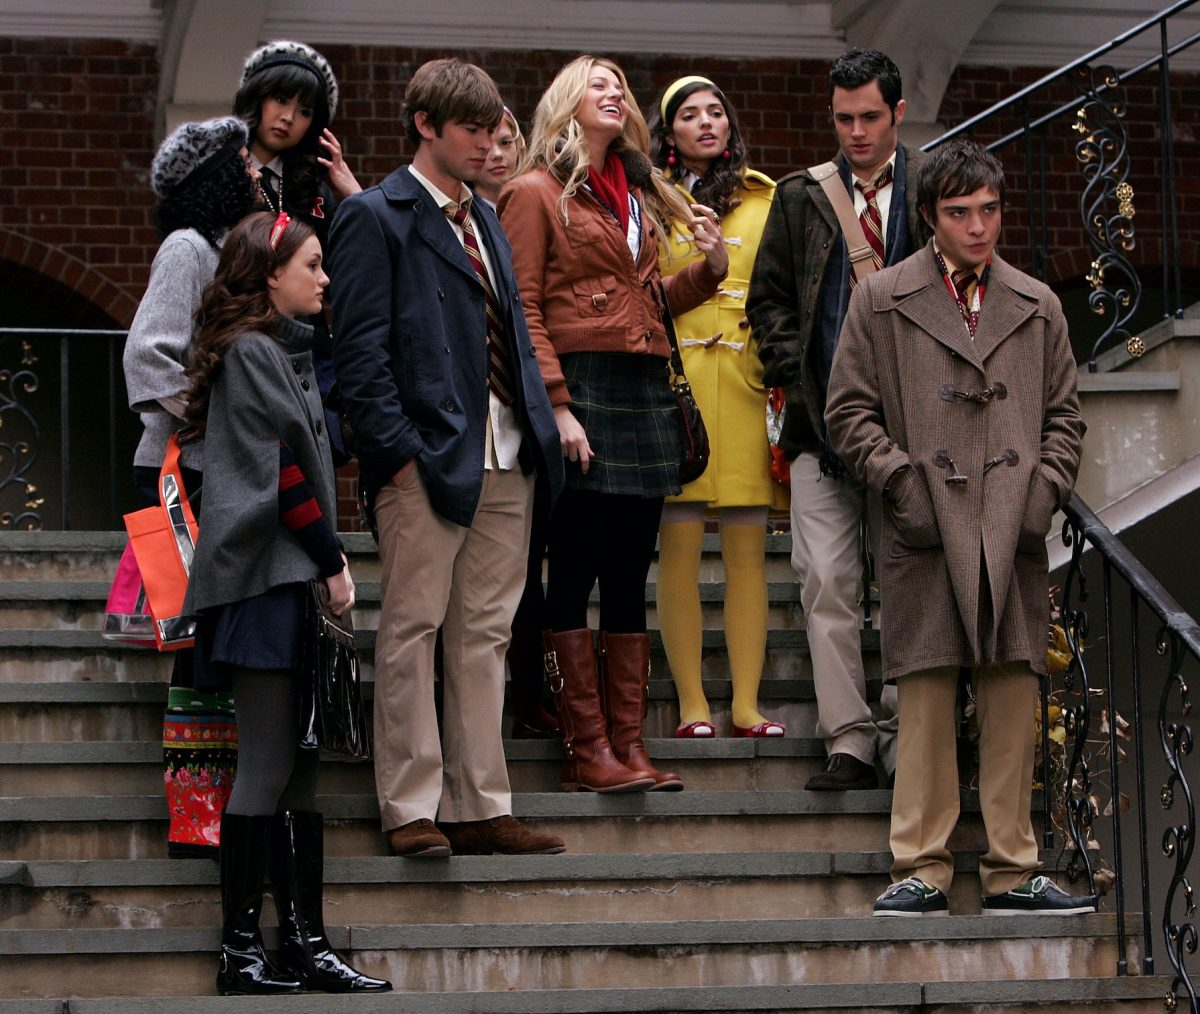 'Gossip Girl' cast filming a scene from the show